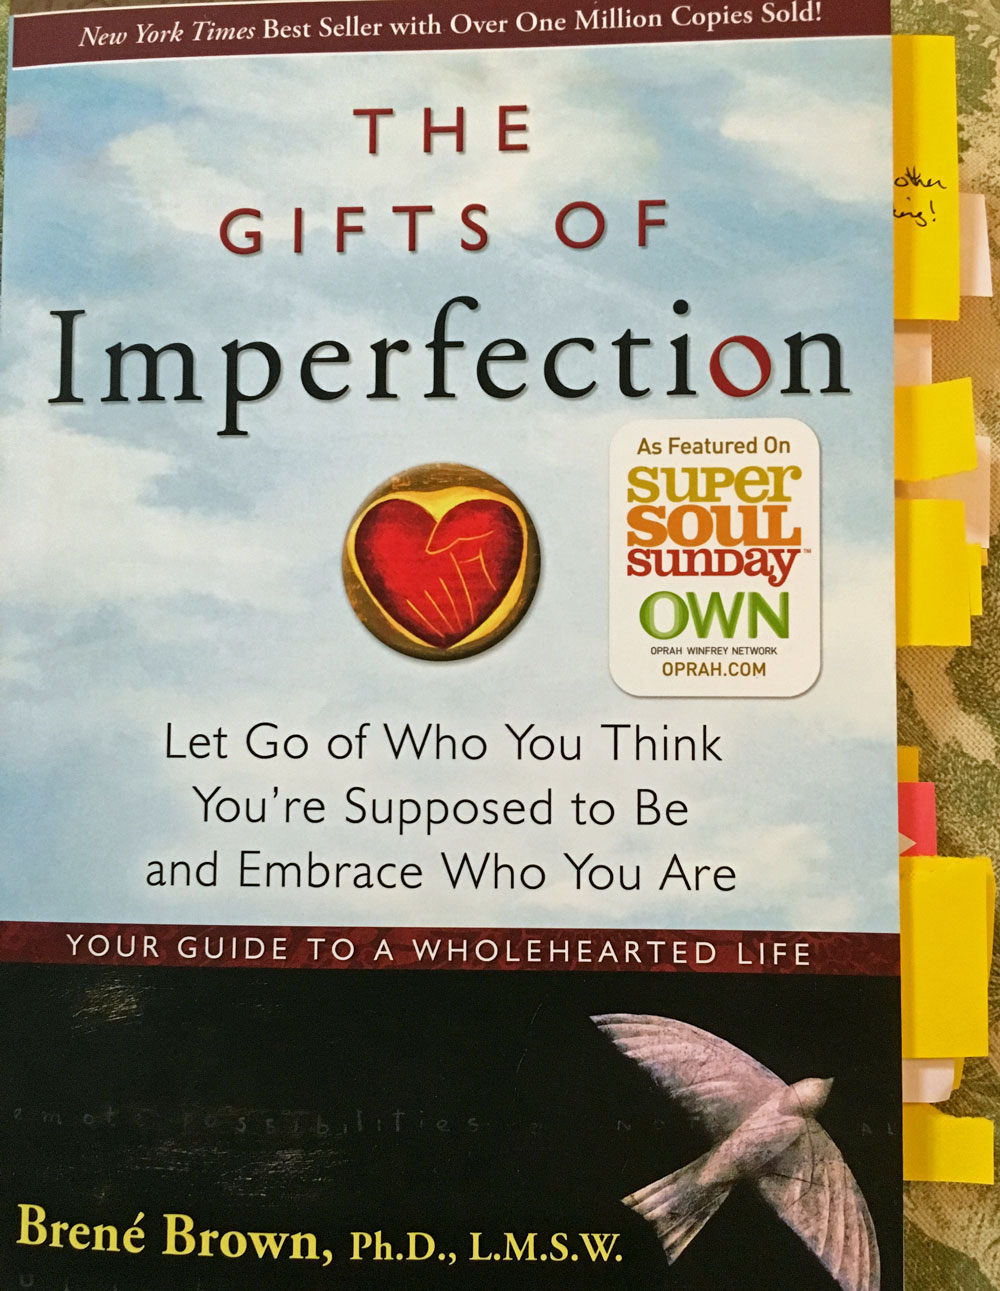 Scrapbook ideas for elderly - My First Thought On Relating This Book To Memory Keeping Was That The Subtitle Could Be Changed To Let Your Scrapbook Pages Reflect Who You Are